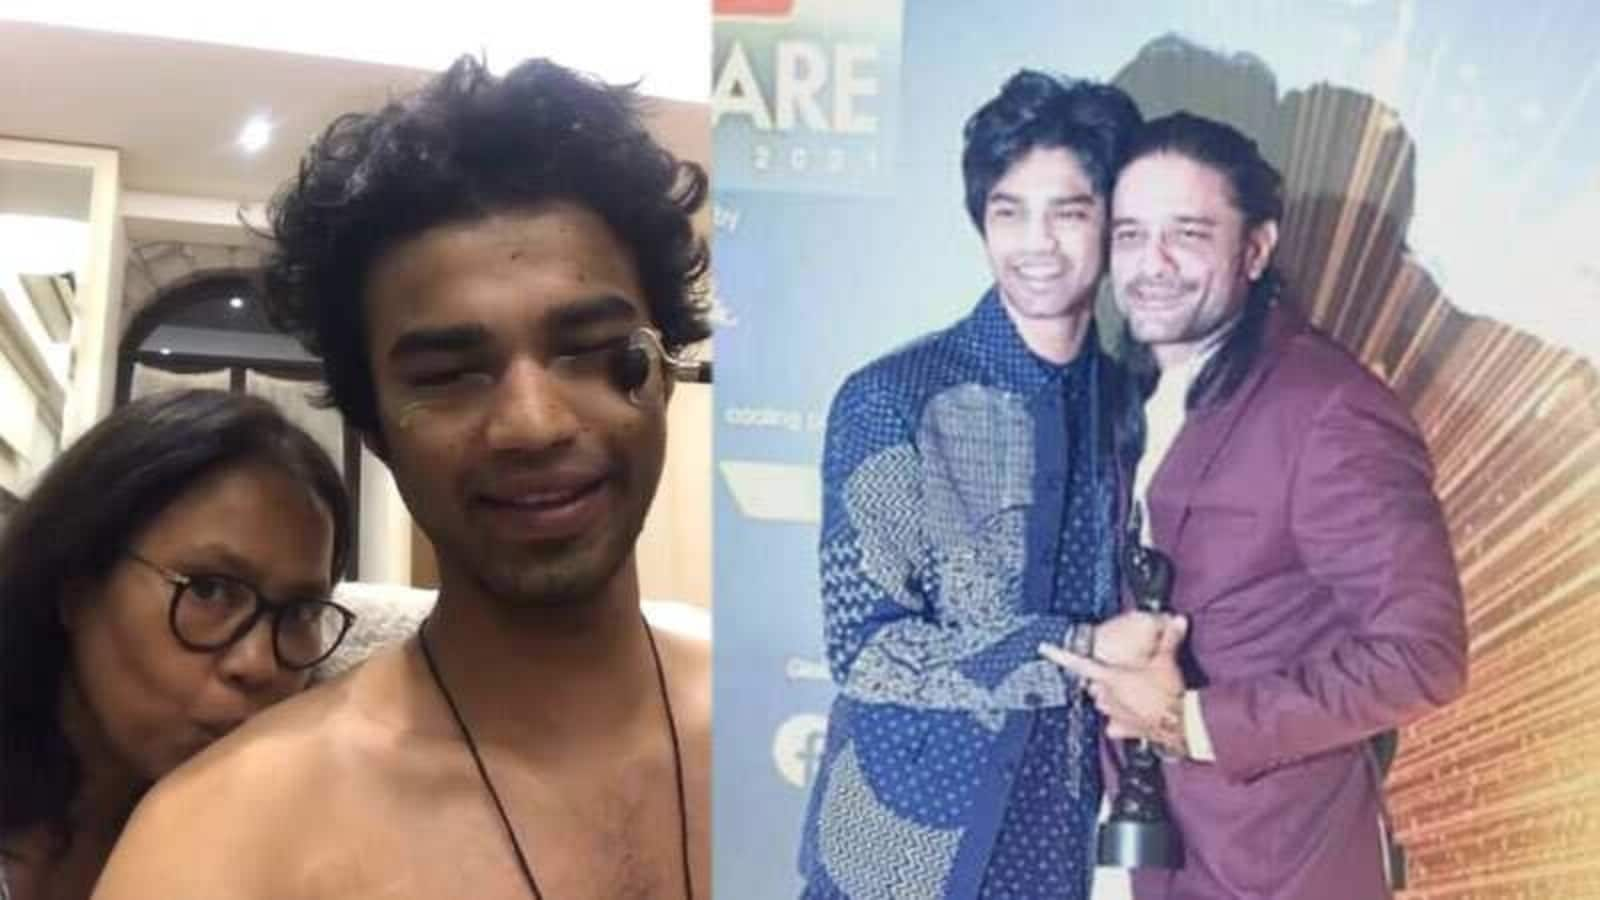 Irrfan's son Babil, who was high at the awards event, was asked: 'I'll use that look and make millions in Bollywood'